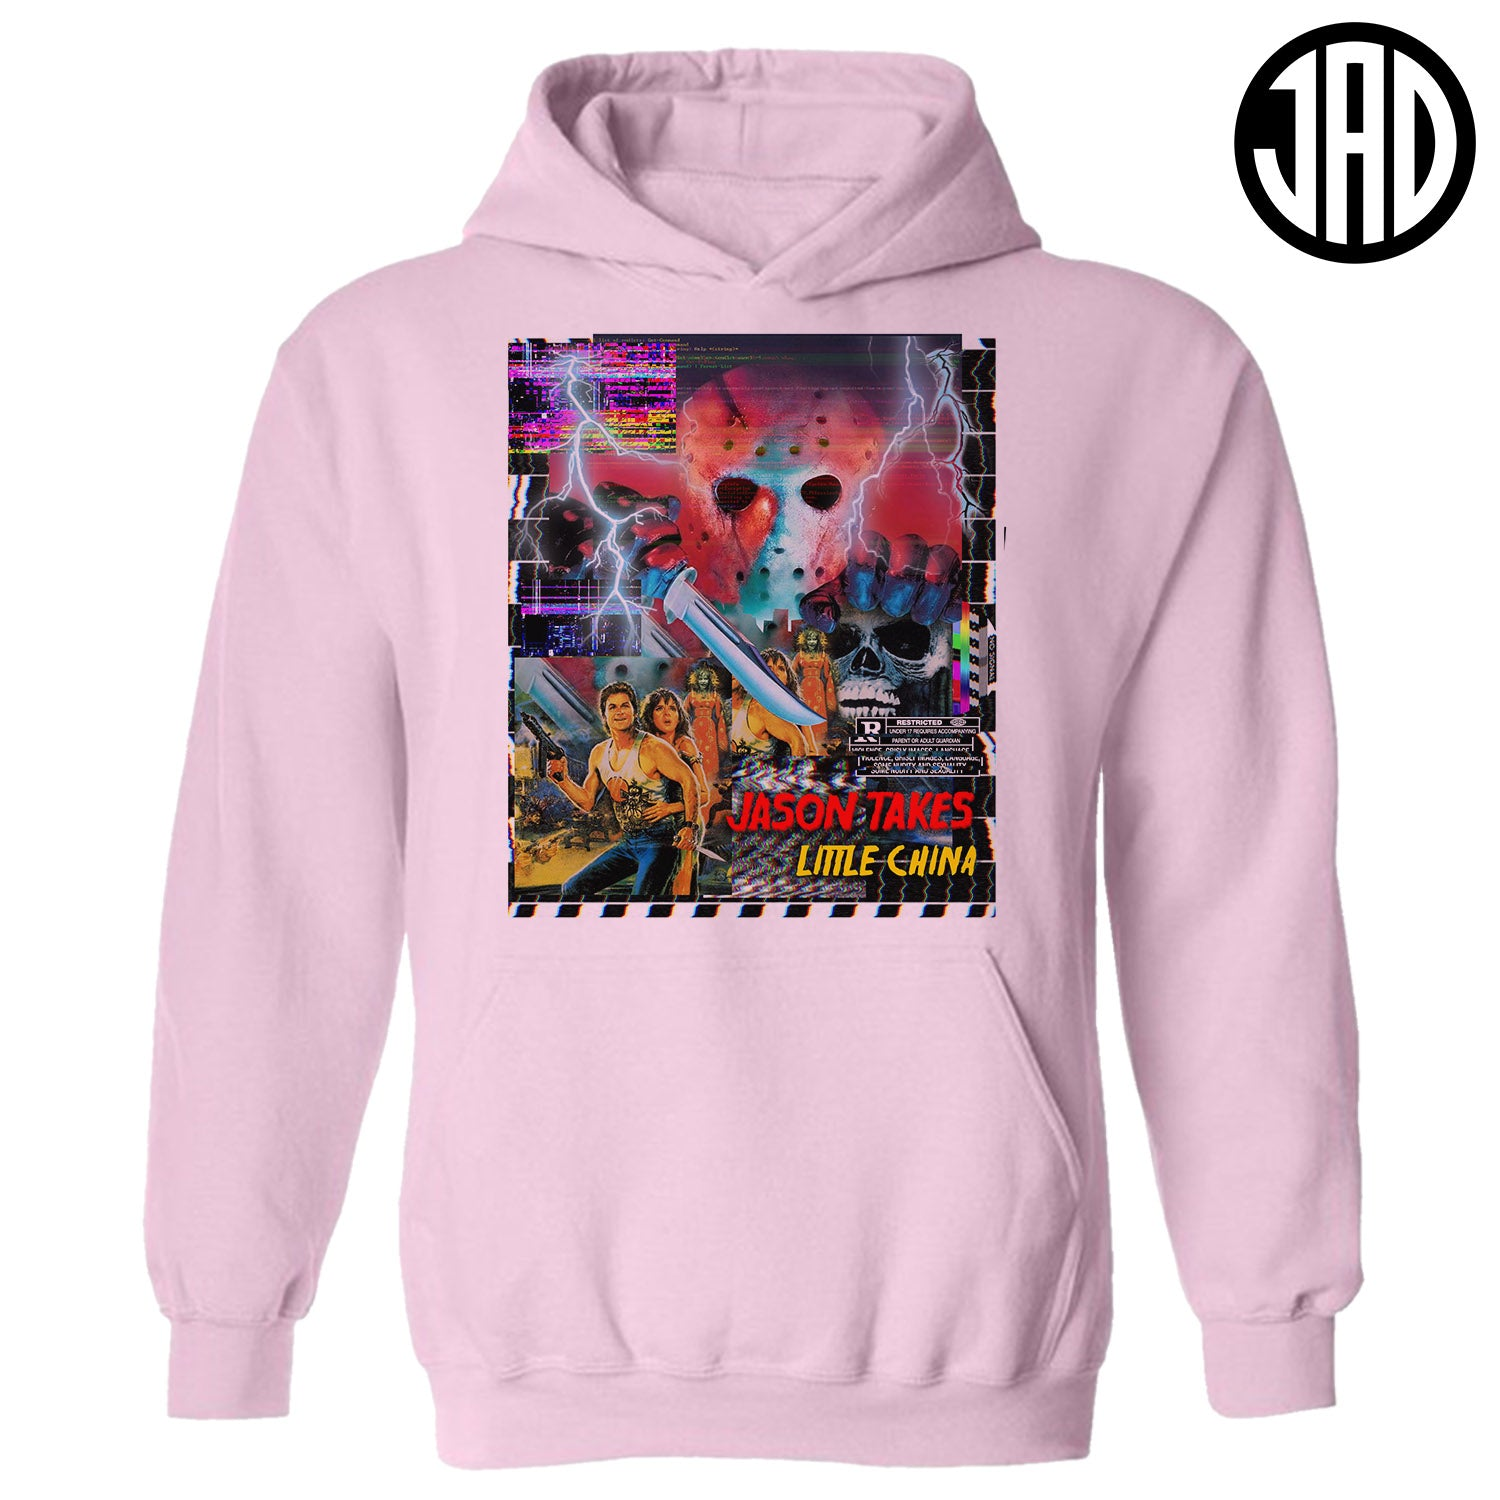 Jason Takes Little China - Mens (Unisex) Hoodie